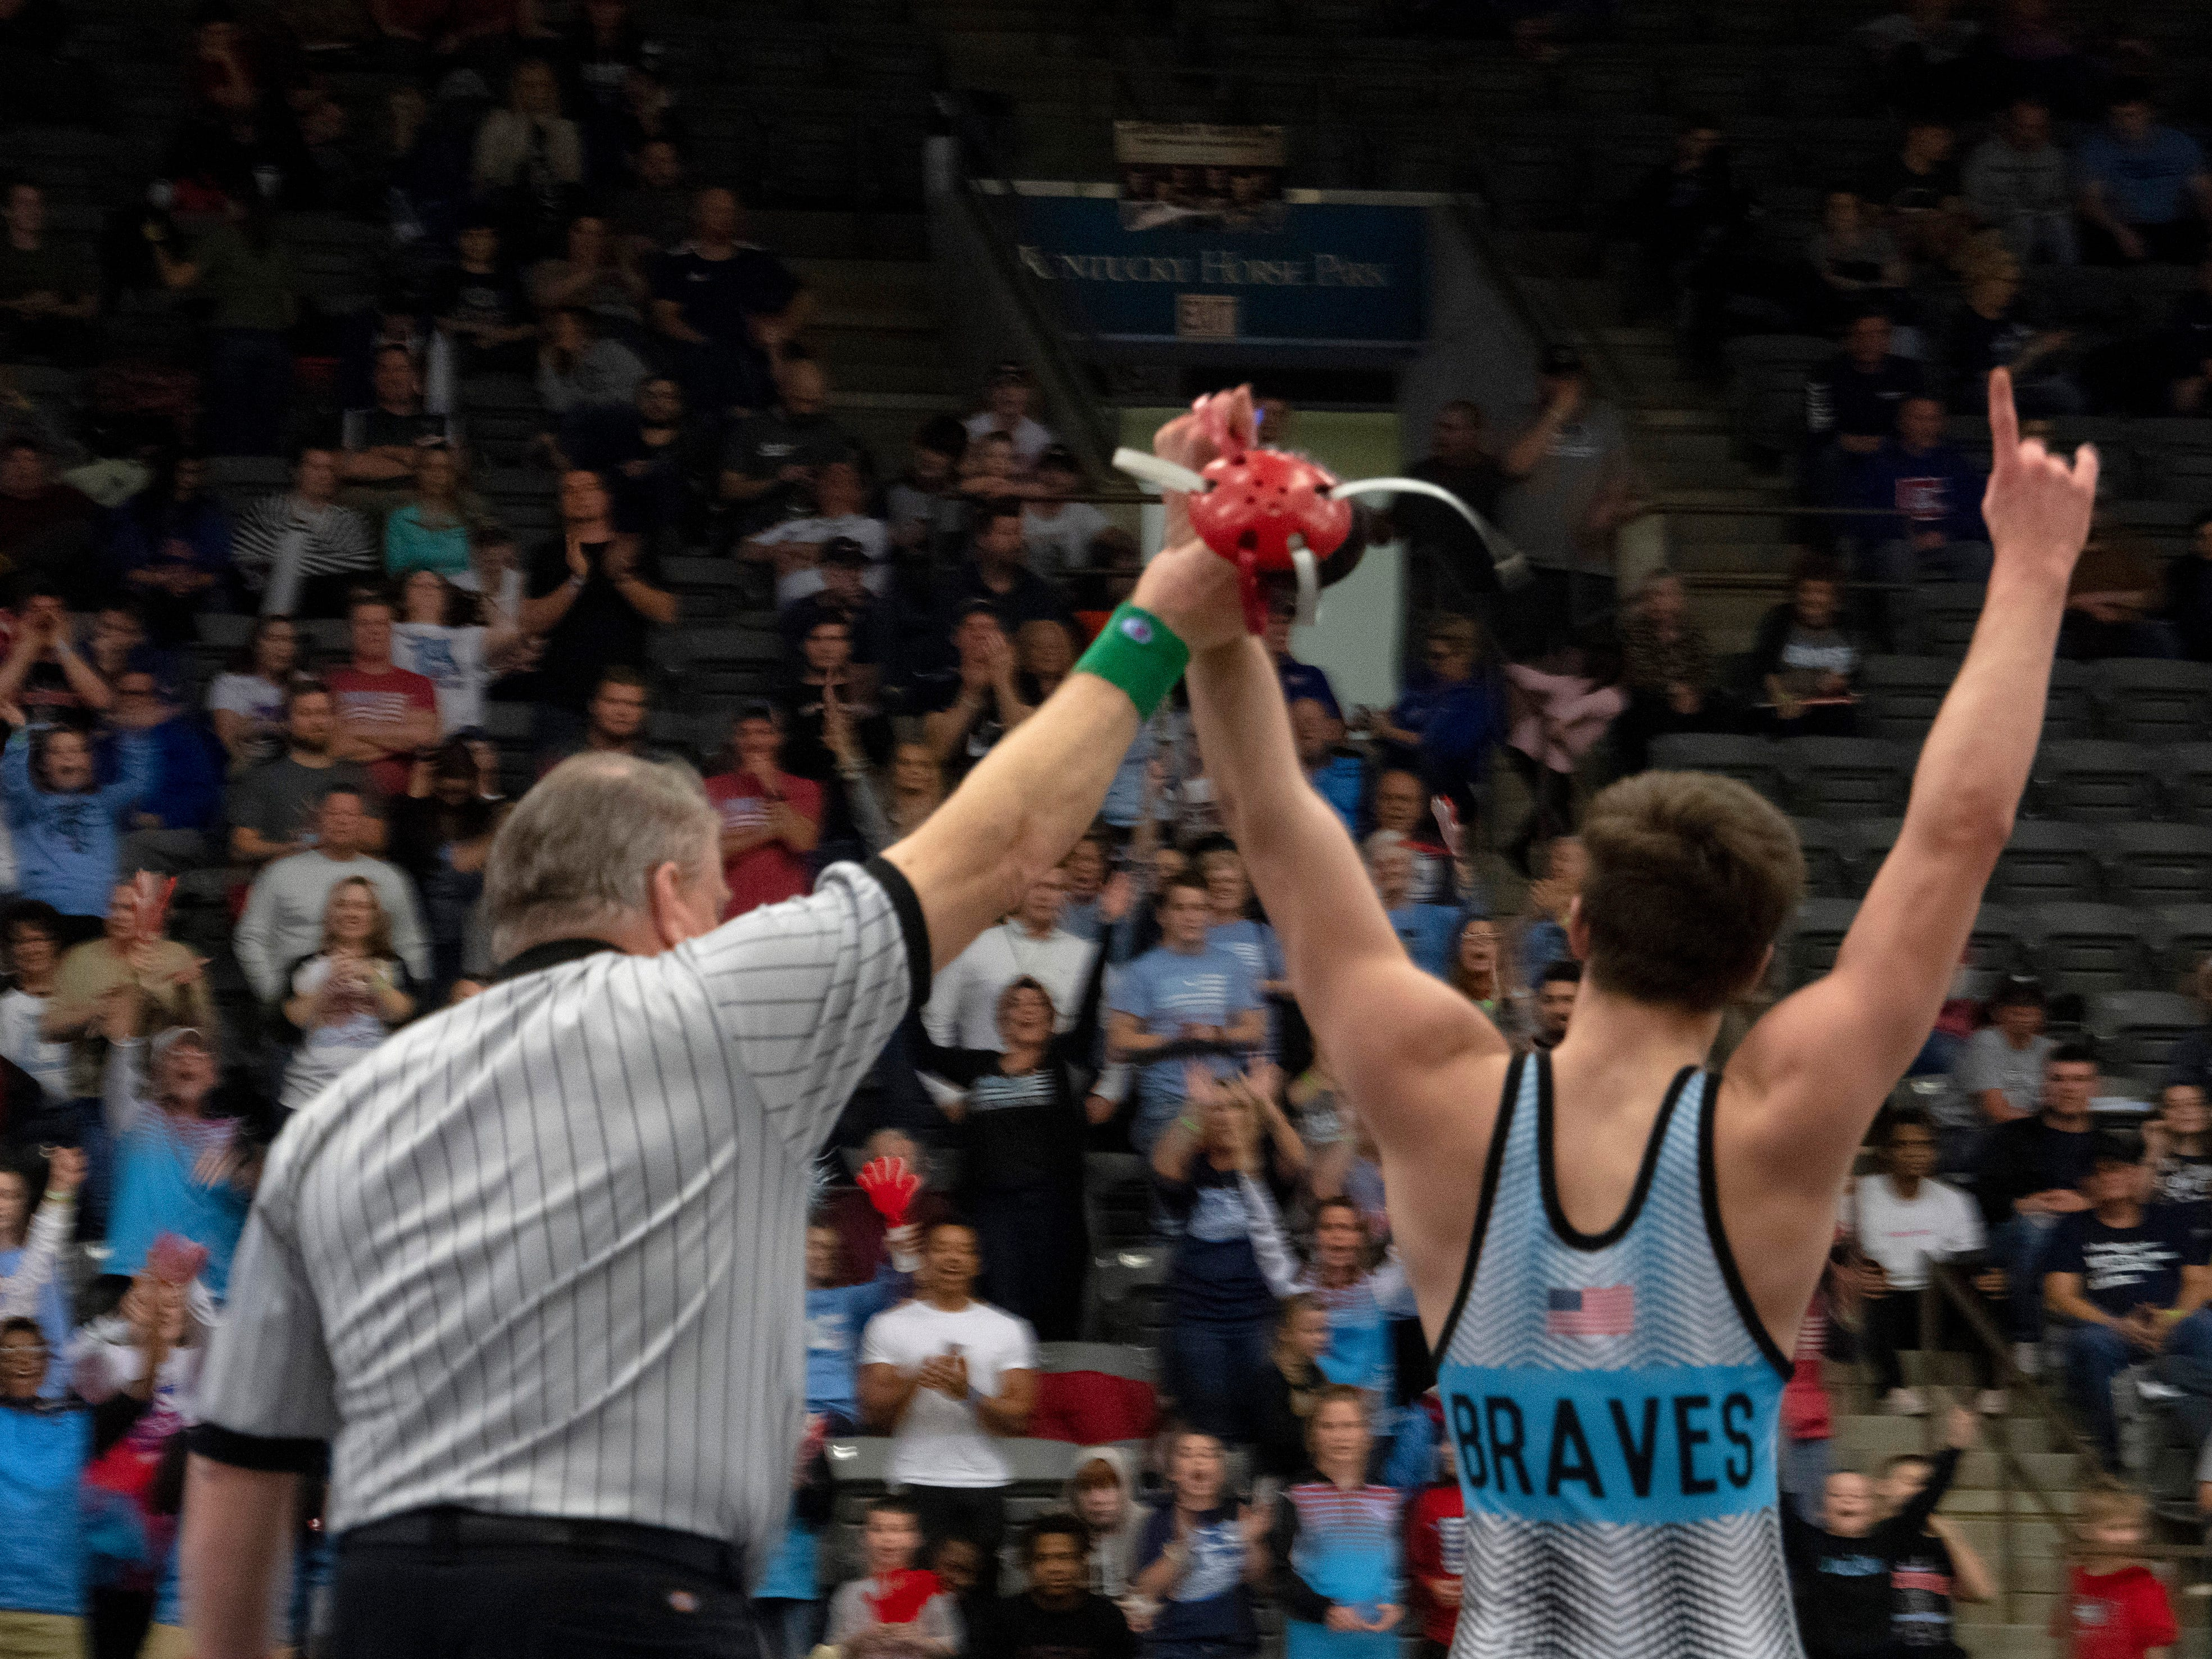 Union County's Dalton Russelburg celebrates after beathing Lafayette's Brayden Giannone for the 152-pound championship at the KHSAA State Wrestling Championships at the Alltech Arena in Lexington, Ky., Saturday afternoon.